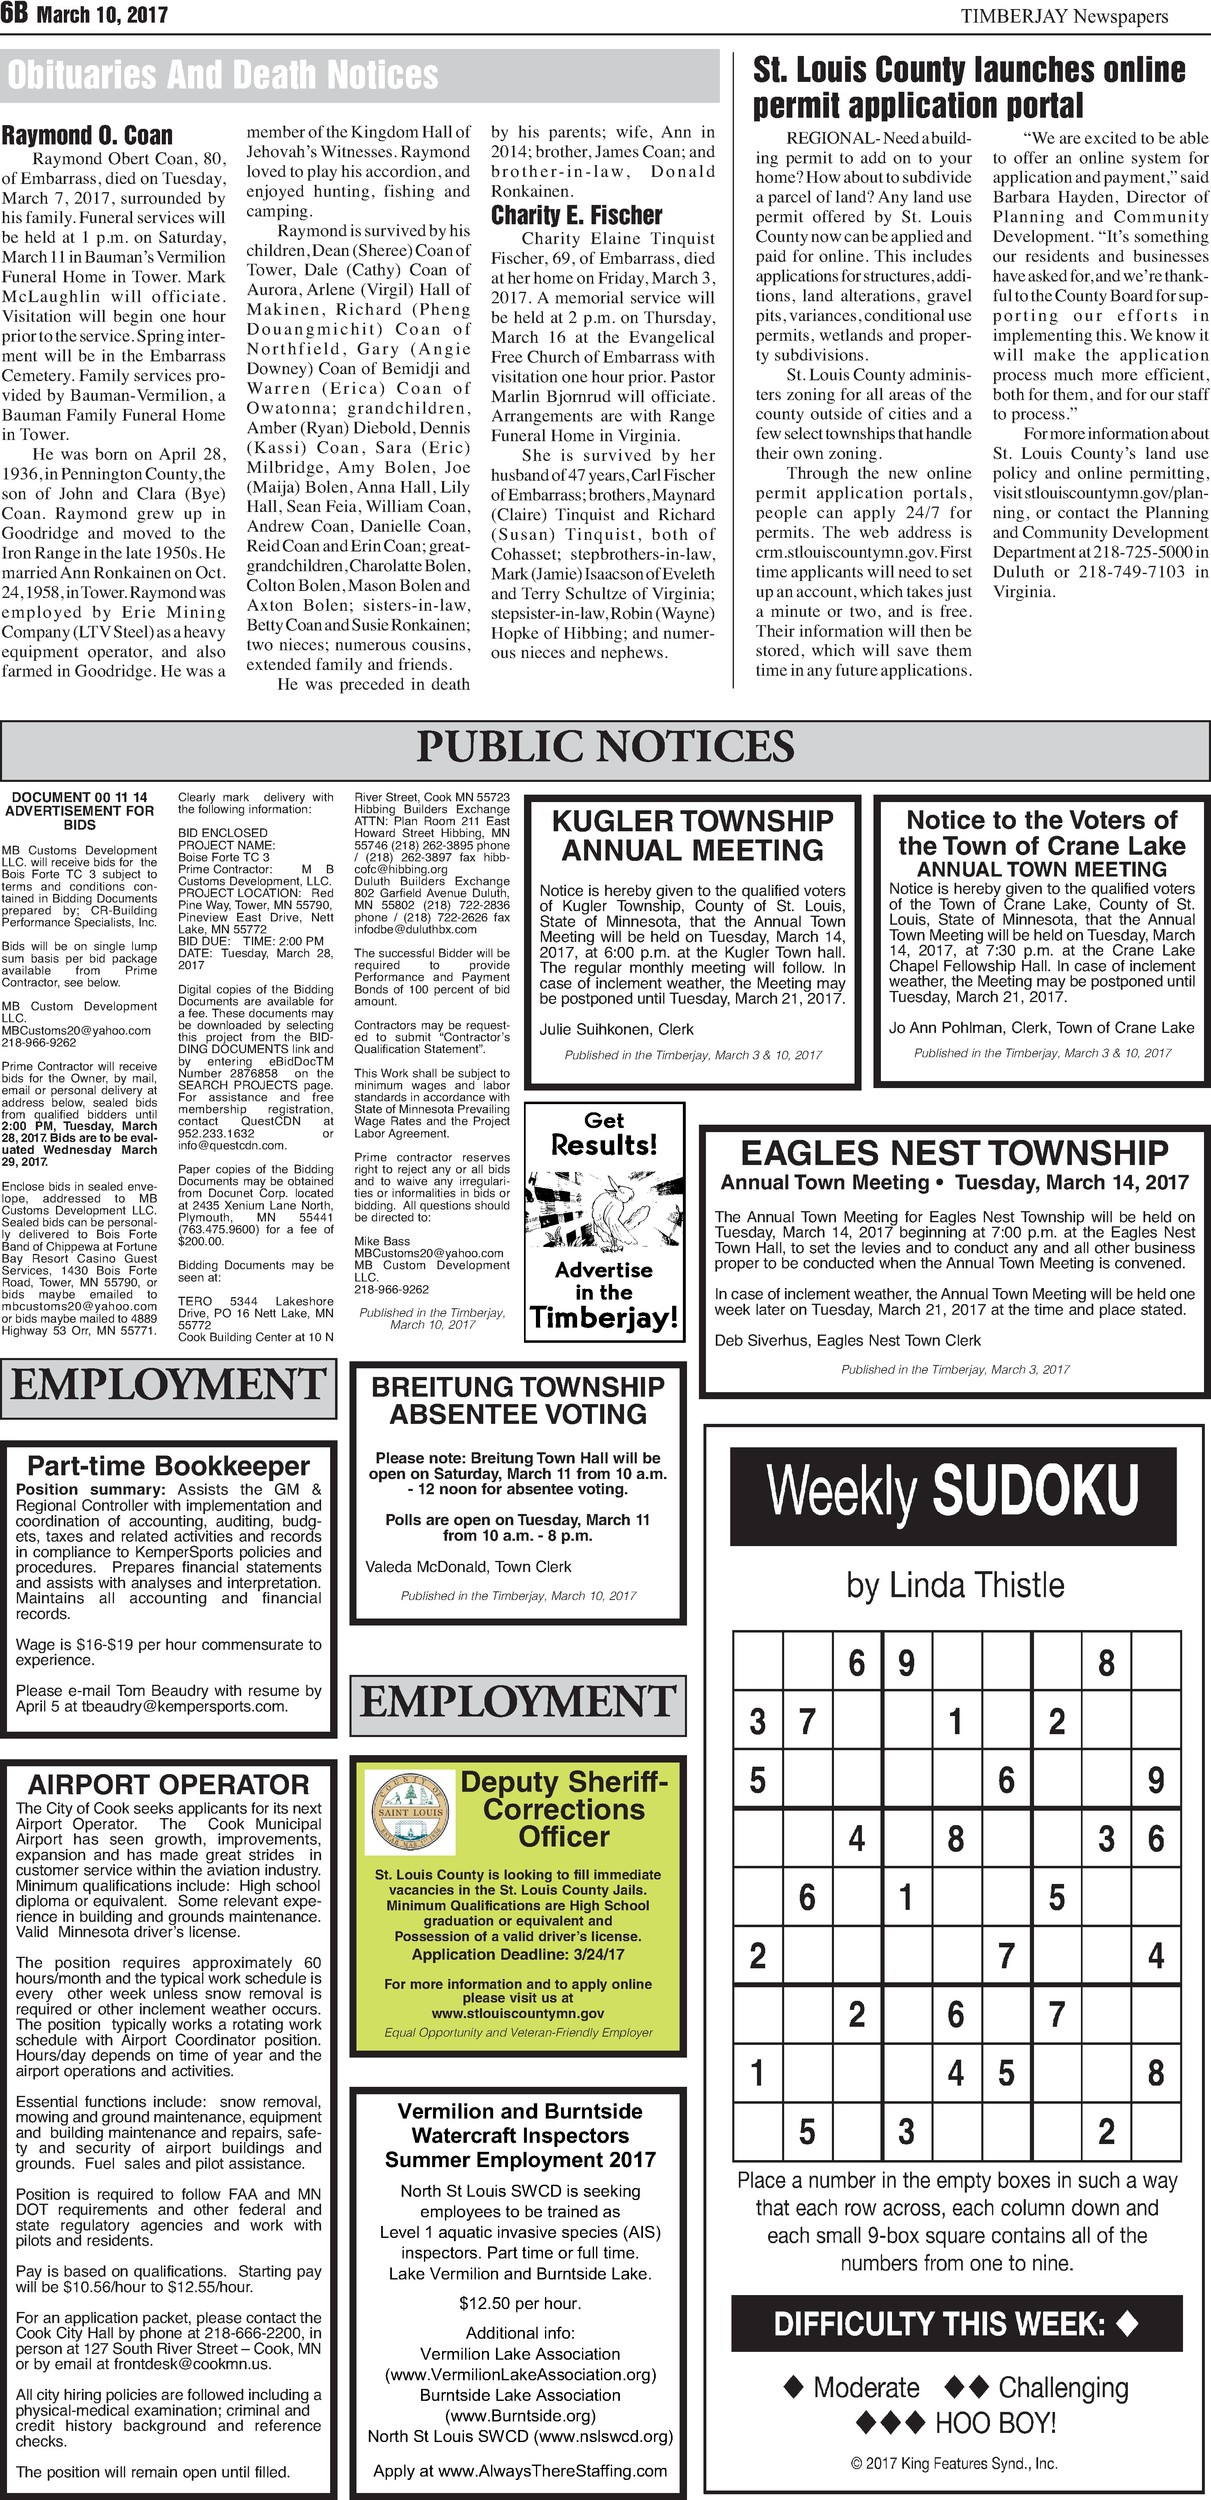 Click here to view the legal notices and classifieds on page 6B